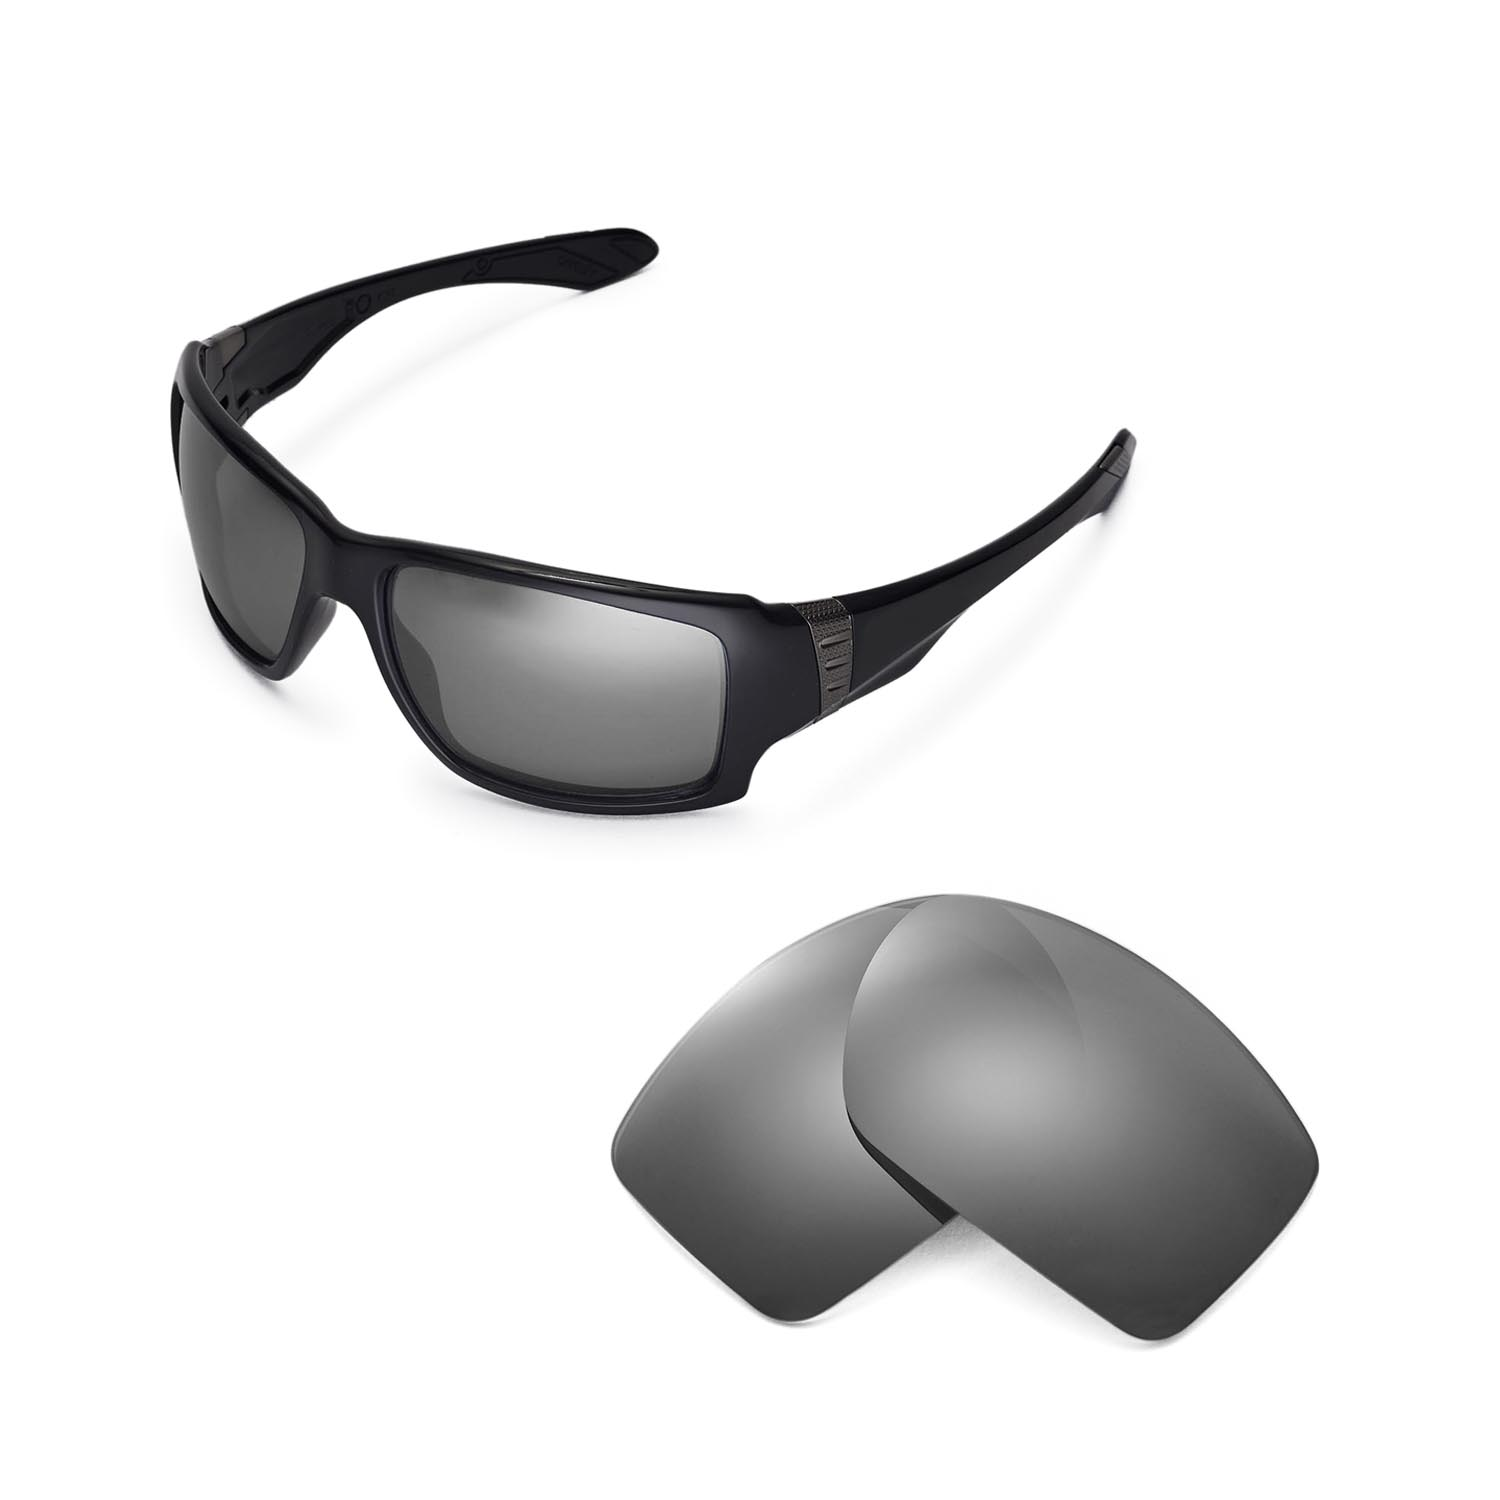 8a1ddcf9d8a Details about New Walleva Polarized Titanium Replacement Lenses For Oakley  Big Taco Sunglasses